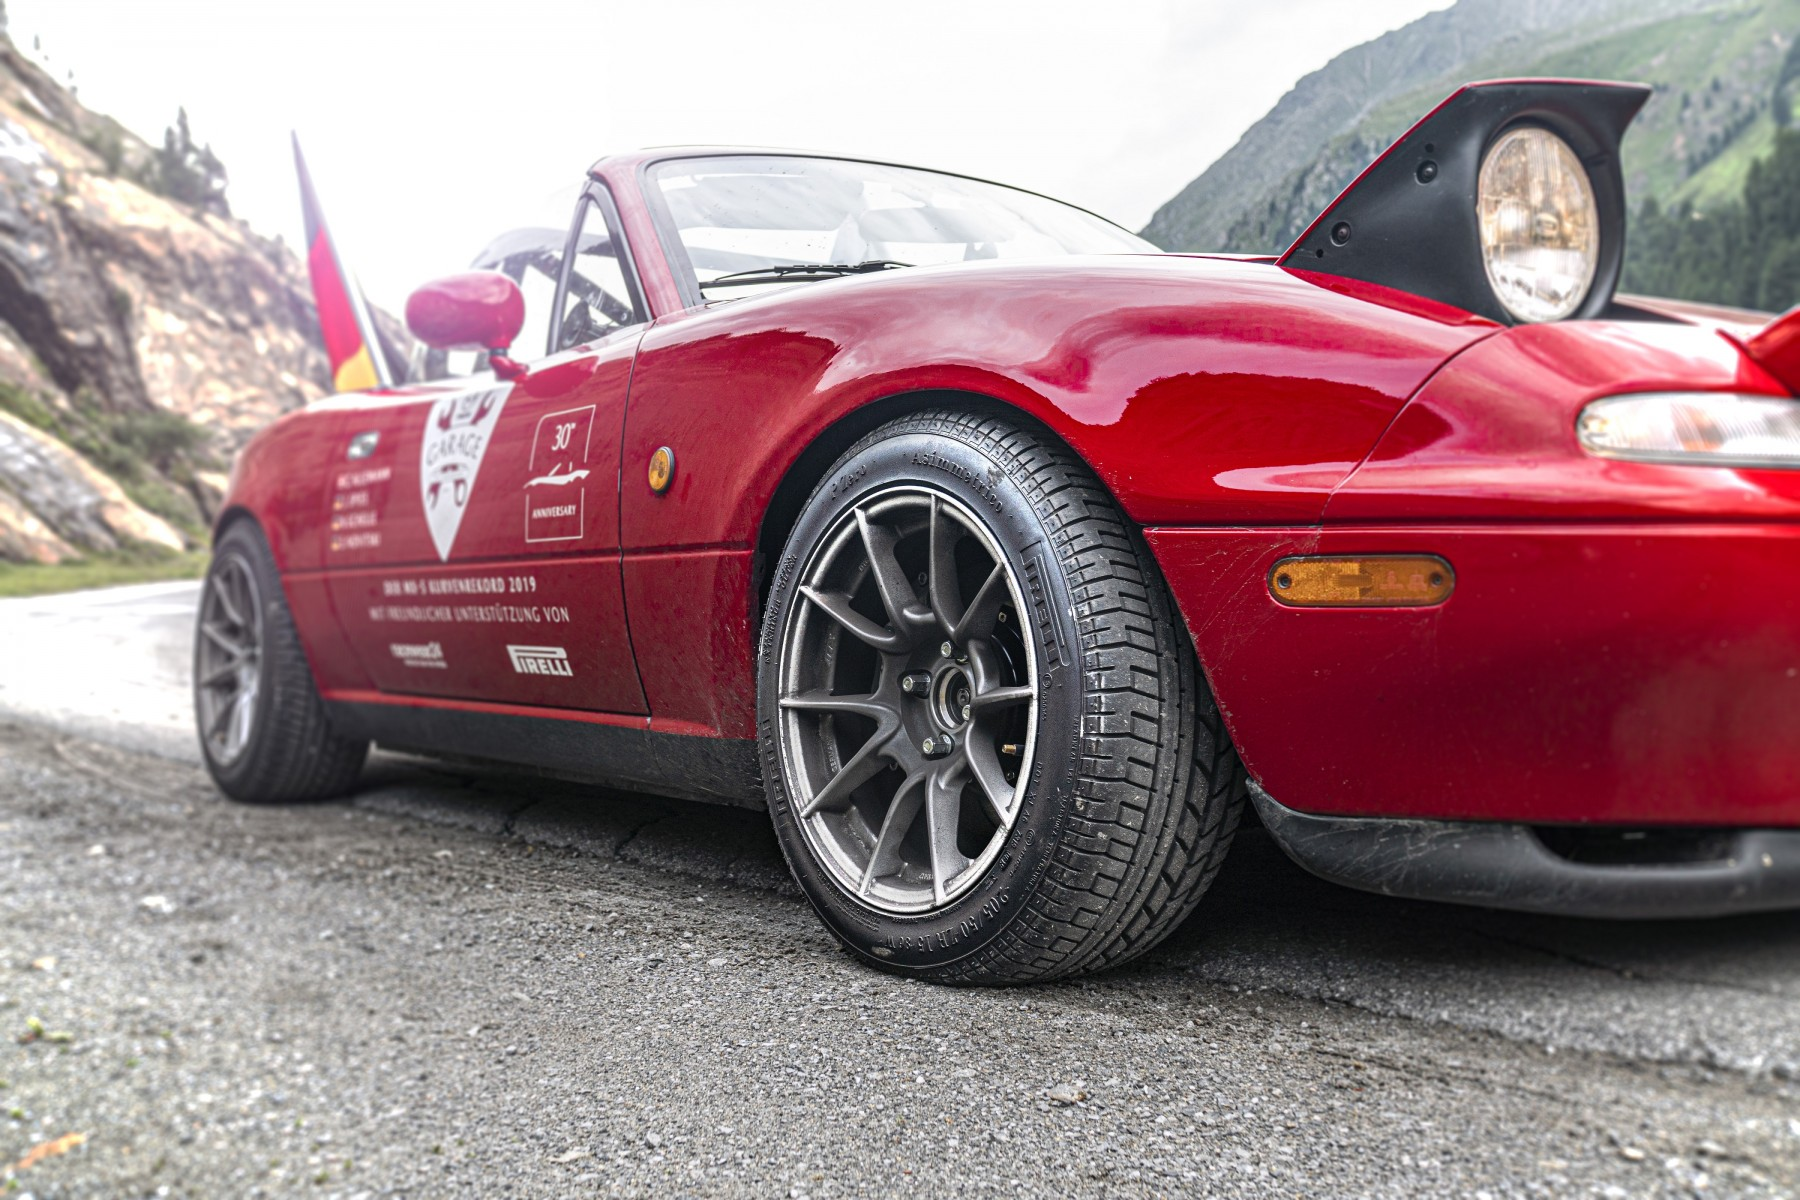 Pirelli Sets World Record with P Zero Tires for Mazda MX-5